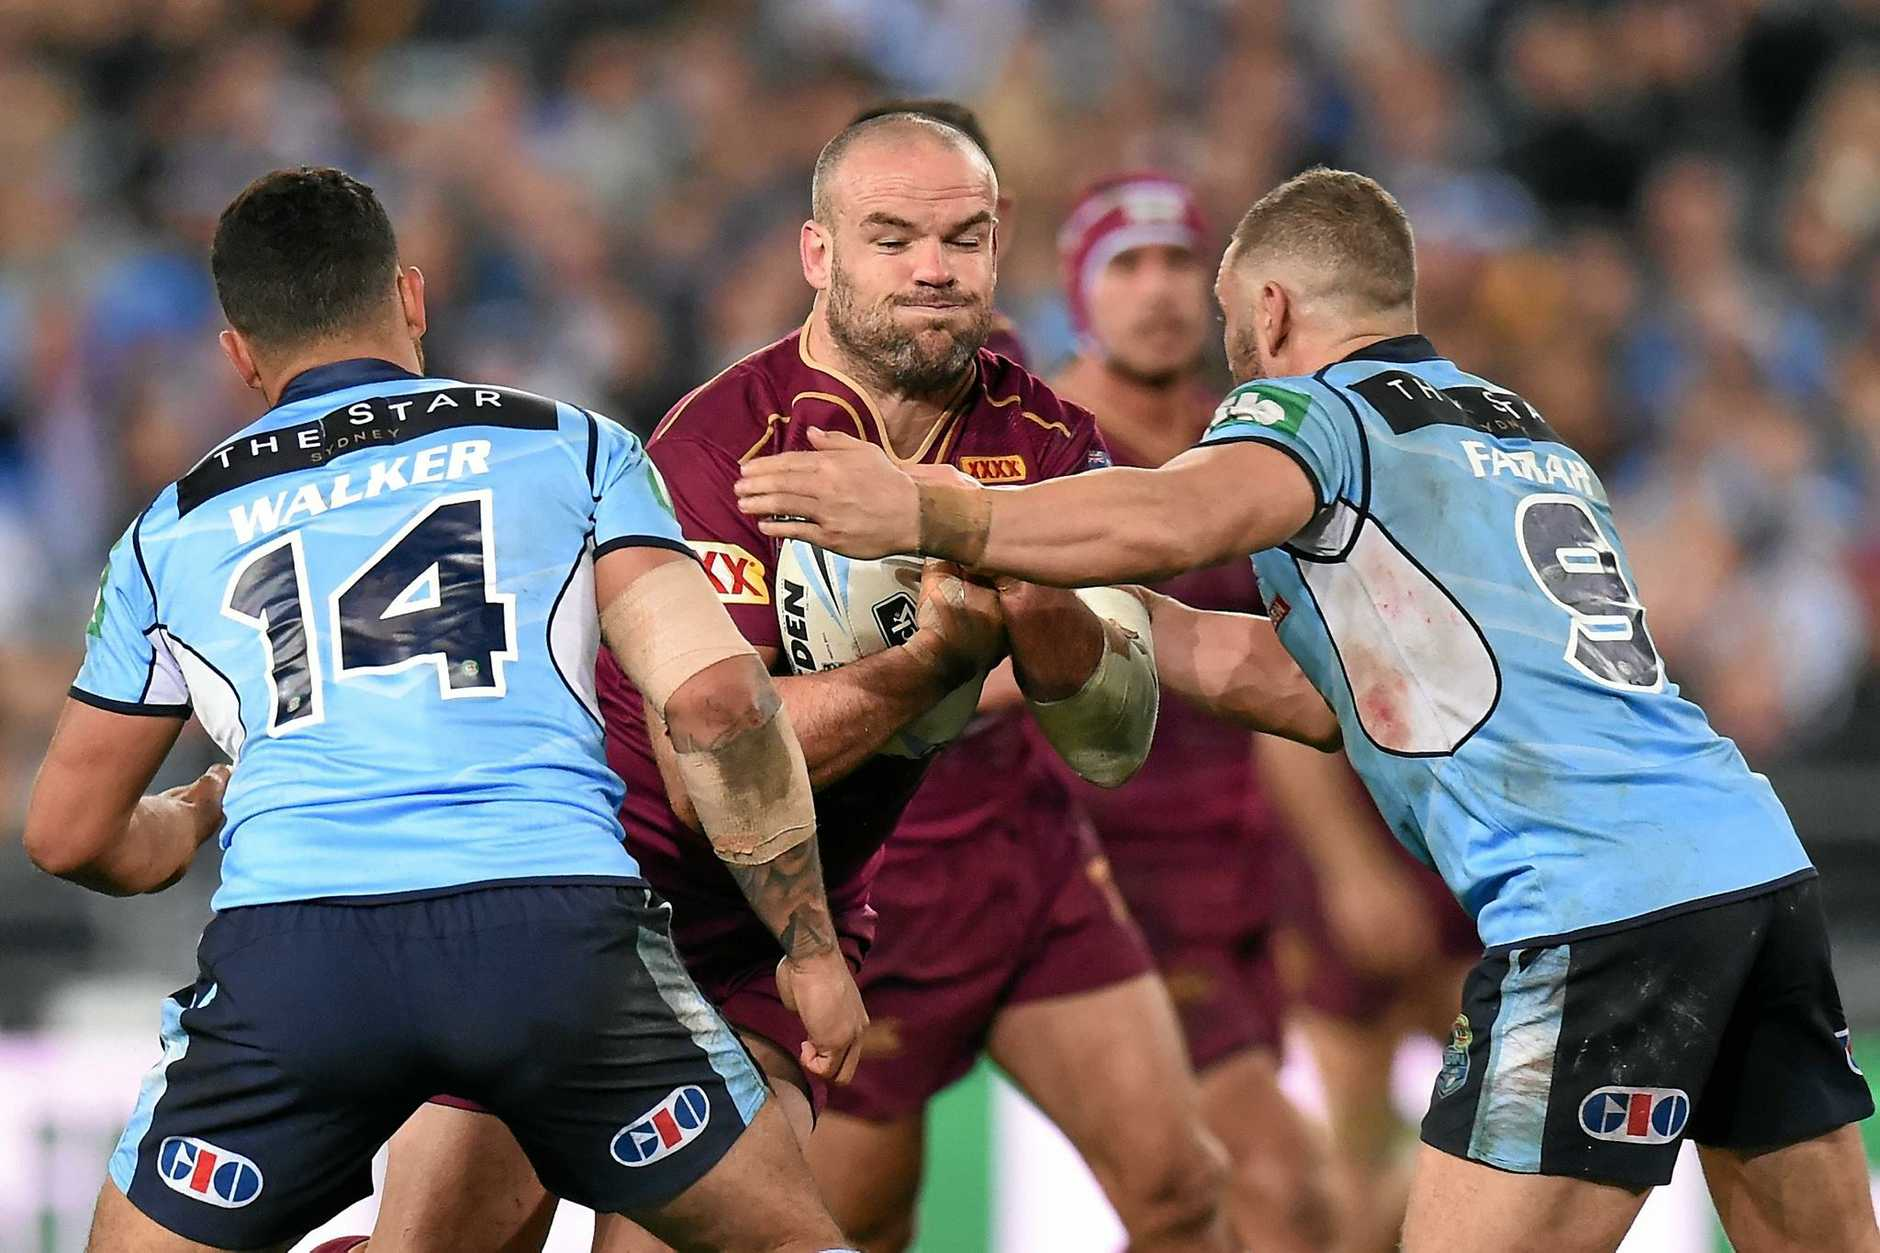 Nate Myles of the Maroons is tackled by Dylan Walker and  of the Robbie Farrah of the Blues during State of Origin Game I between the NSW Blues and Queensland Maroons, at ANZ Stadium in Sydney on Wednesday, June 1, 2016. (AAP Image/Dean Lewins) NO ARCHIVING, EDITORIAL USE ONLY